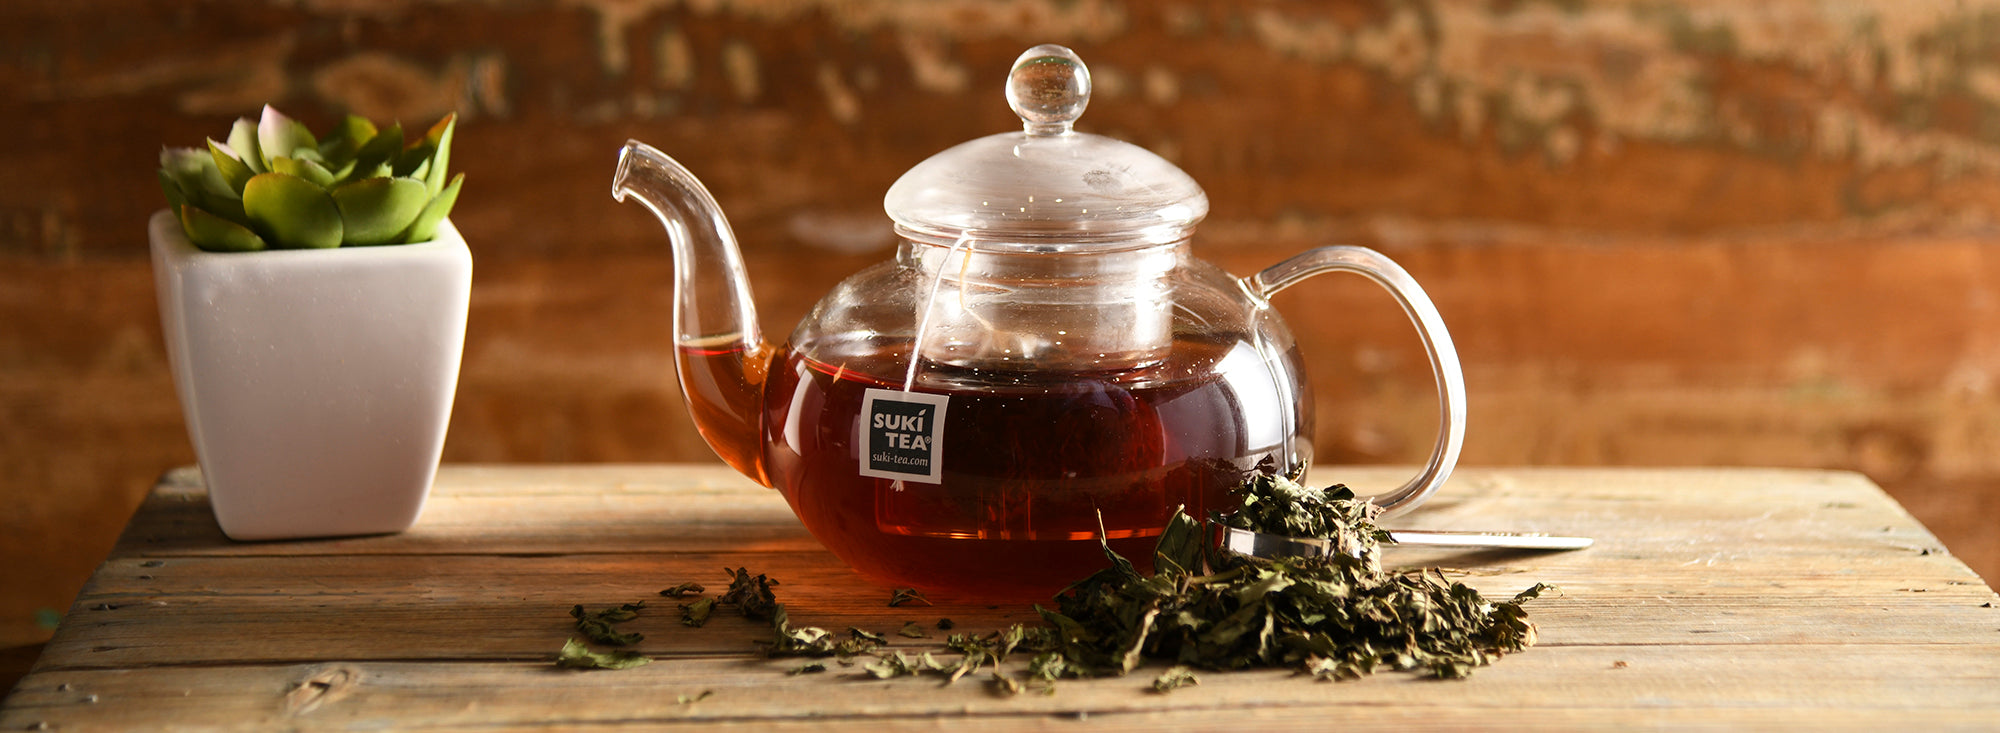 5 Teas under £5 to wake you up, cool you down and chill you out